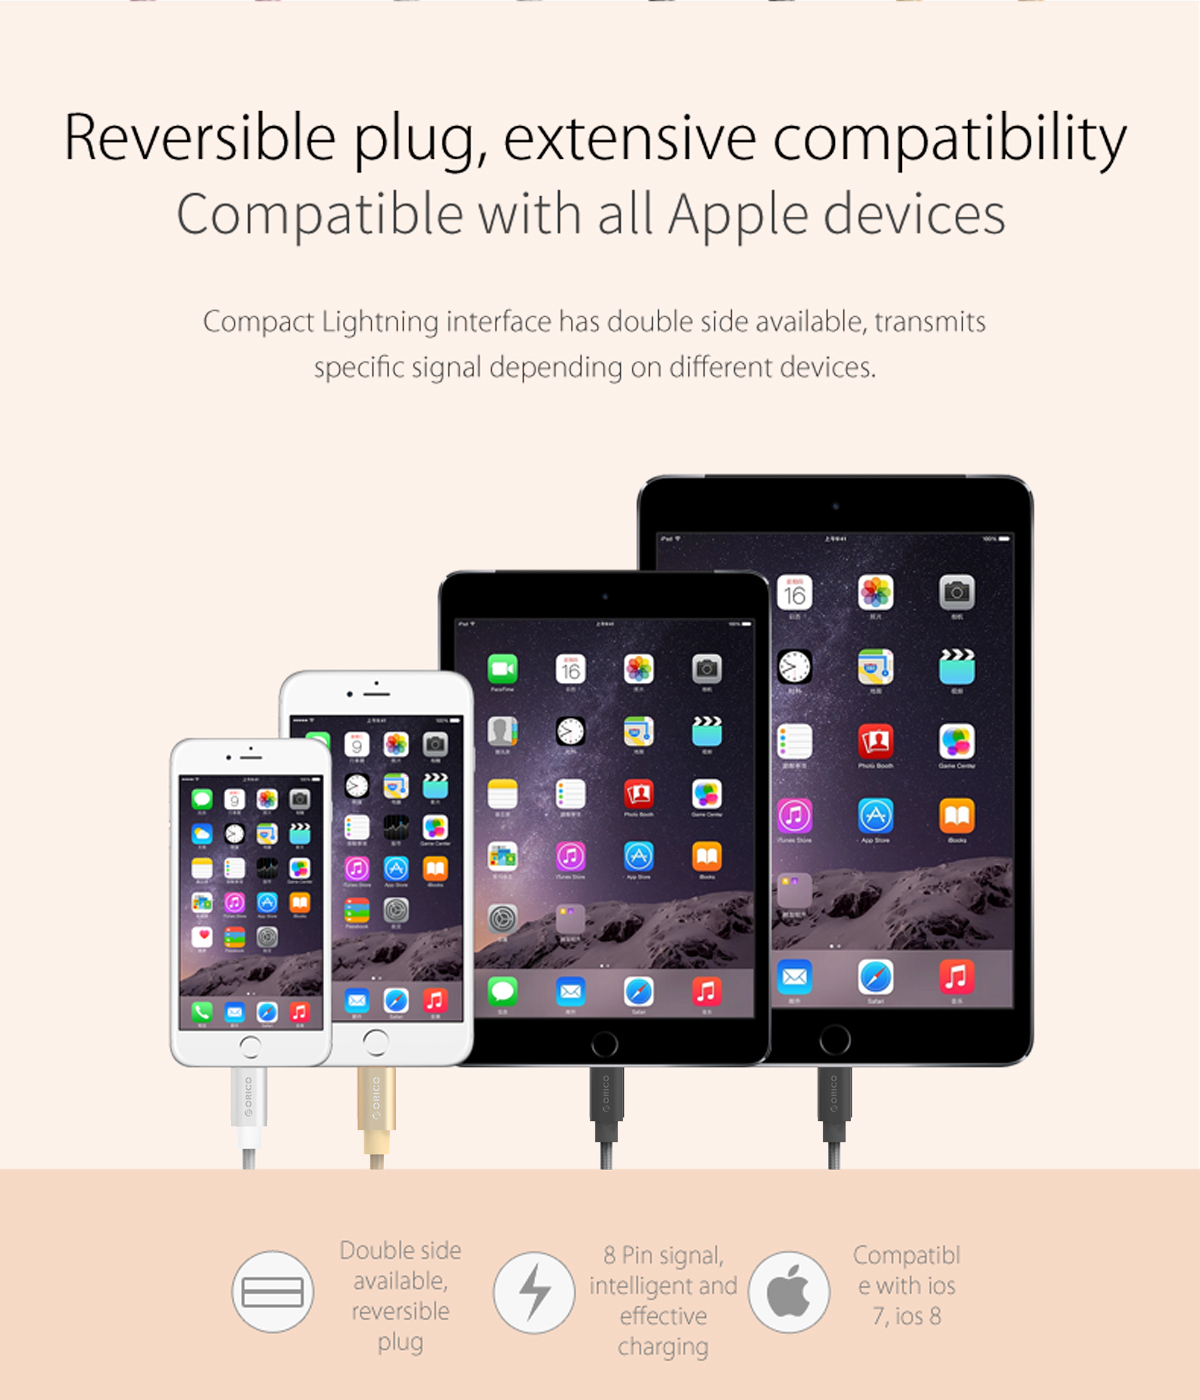 reversible plug and extensive compatibility